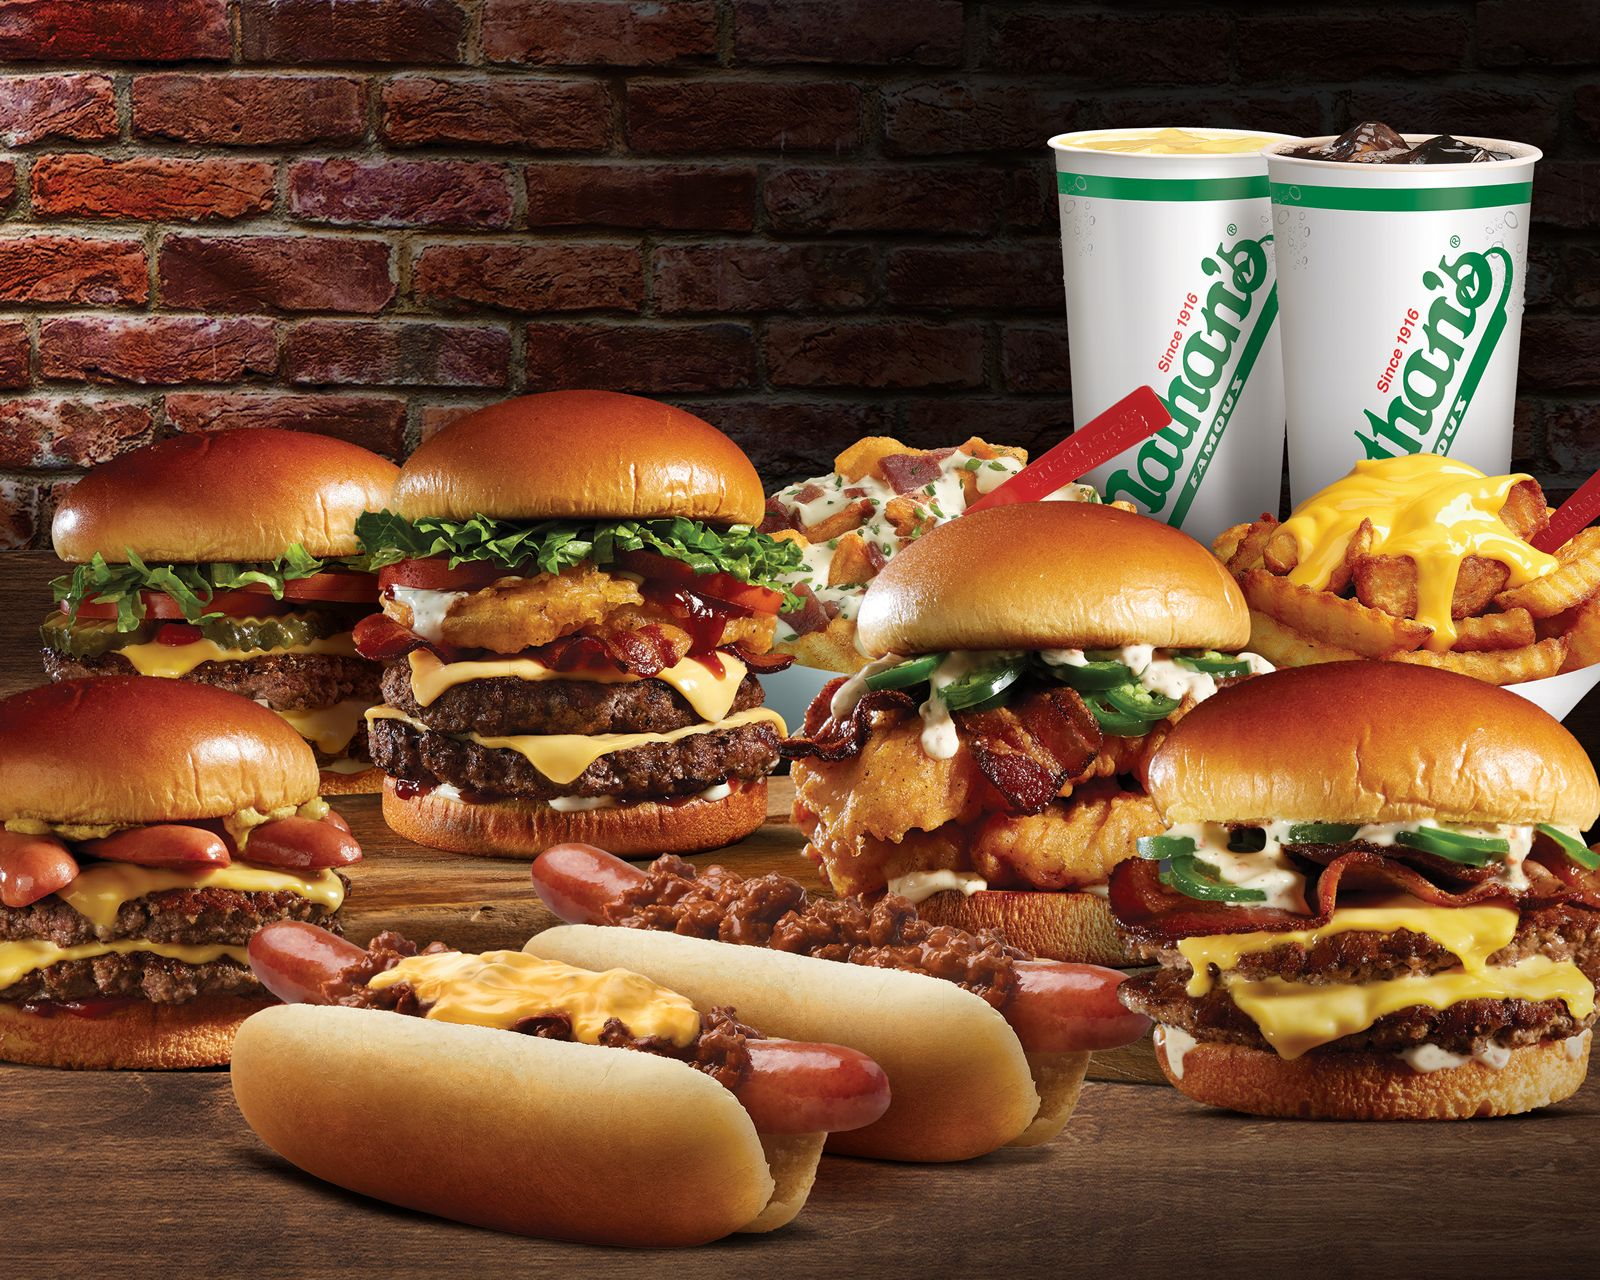 Nathan's Famous annonce un accord avec Branded Virtual Kitchens